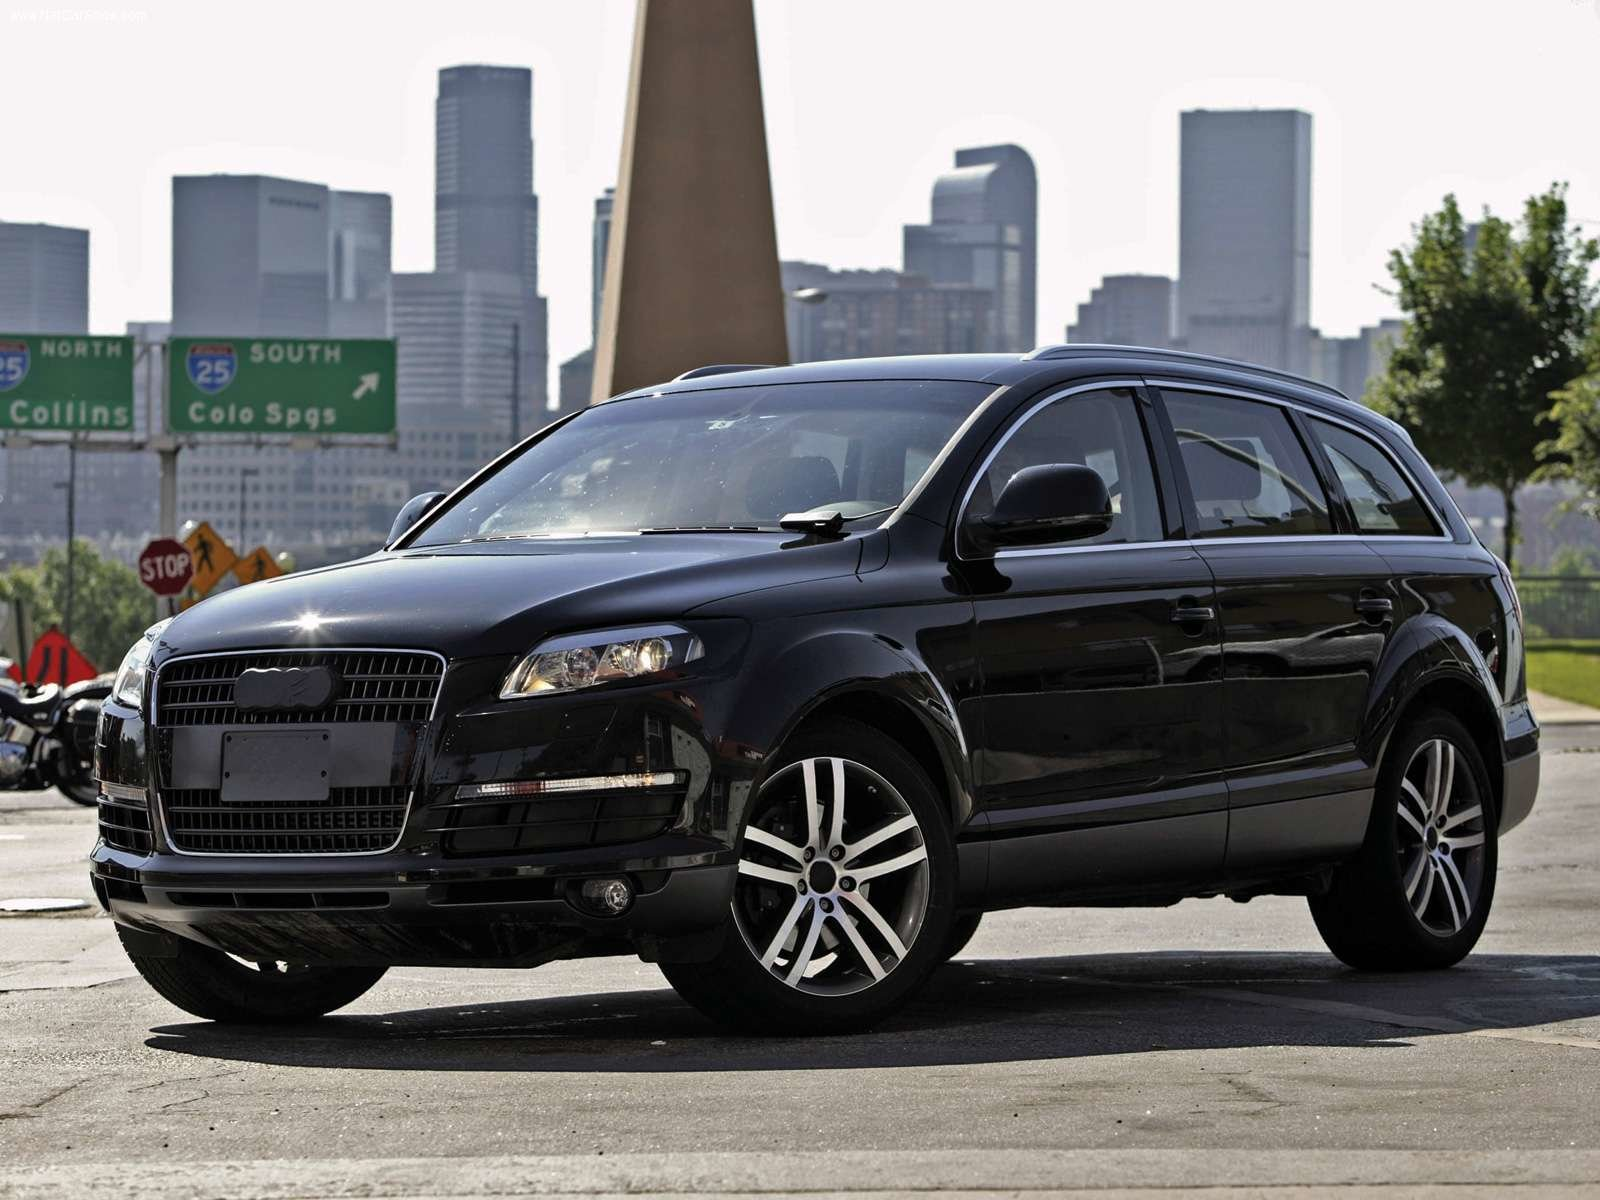 Latest World Of Cars Audi Q7 Images Free Download